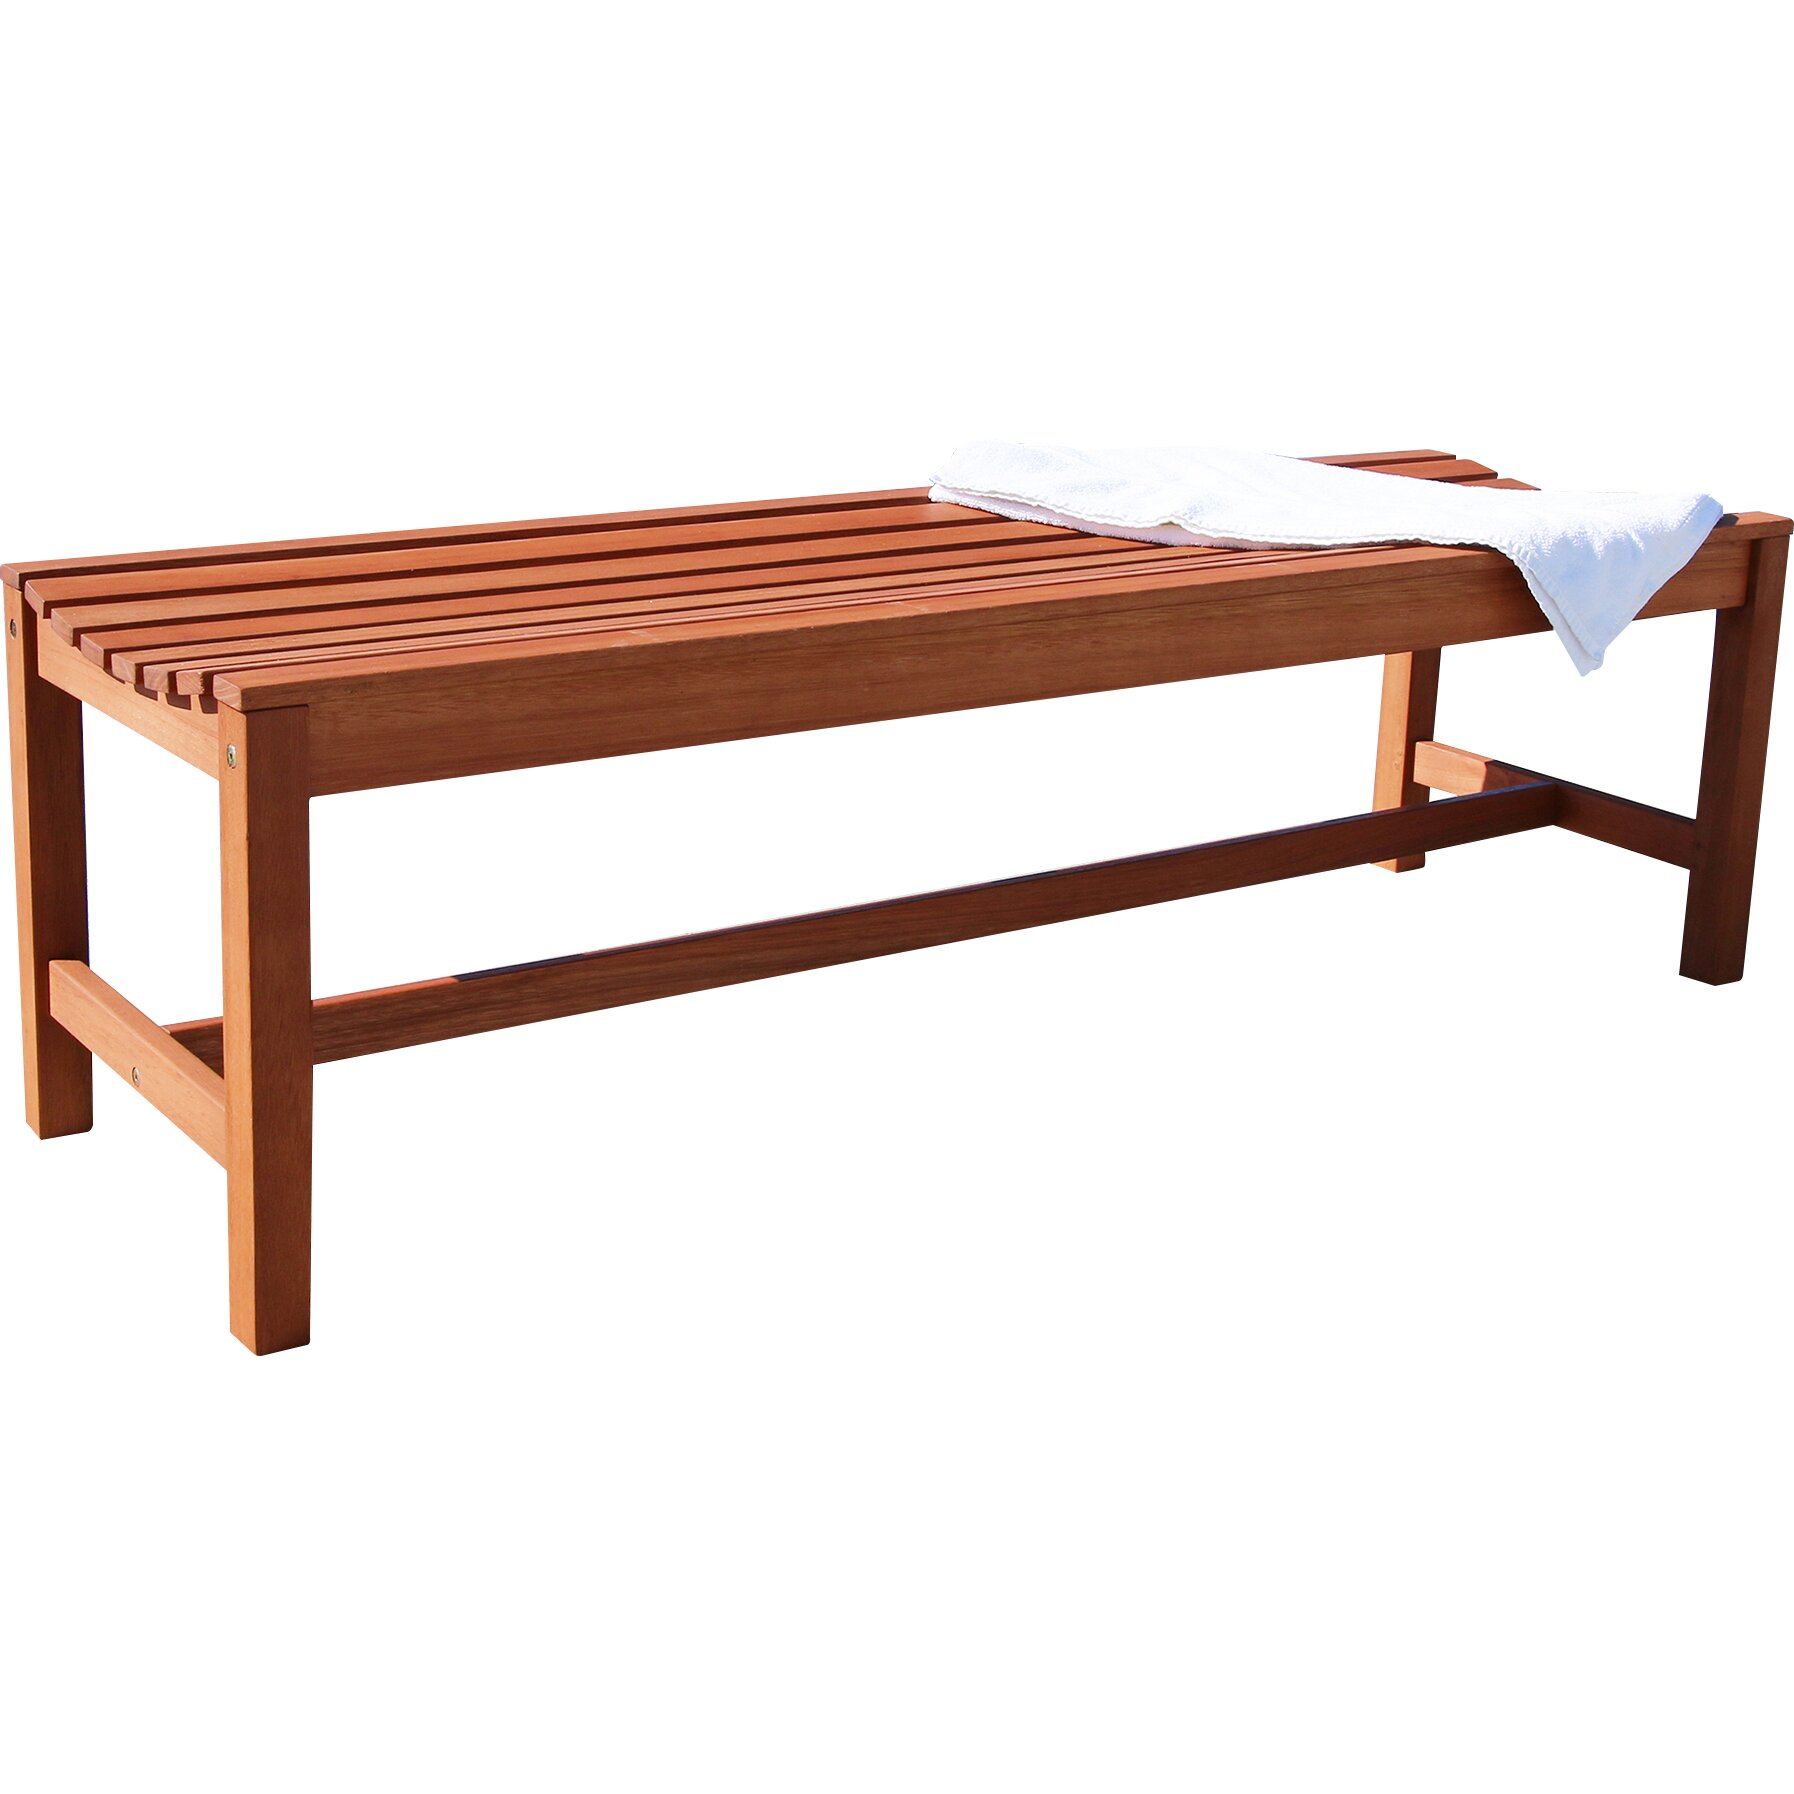 Vifah Wood Garden Bench Reviews Wayfair